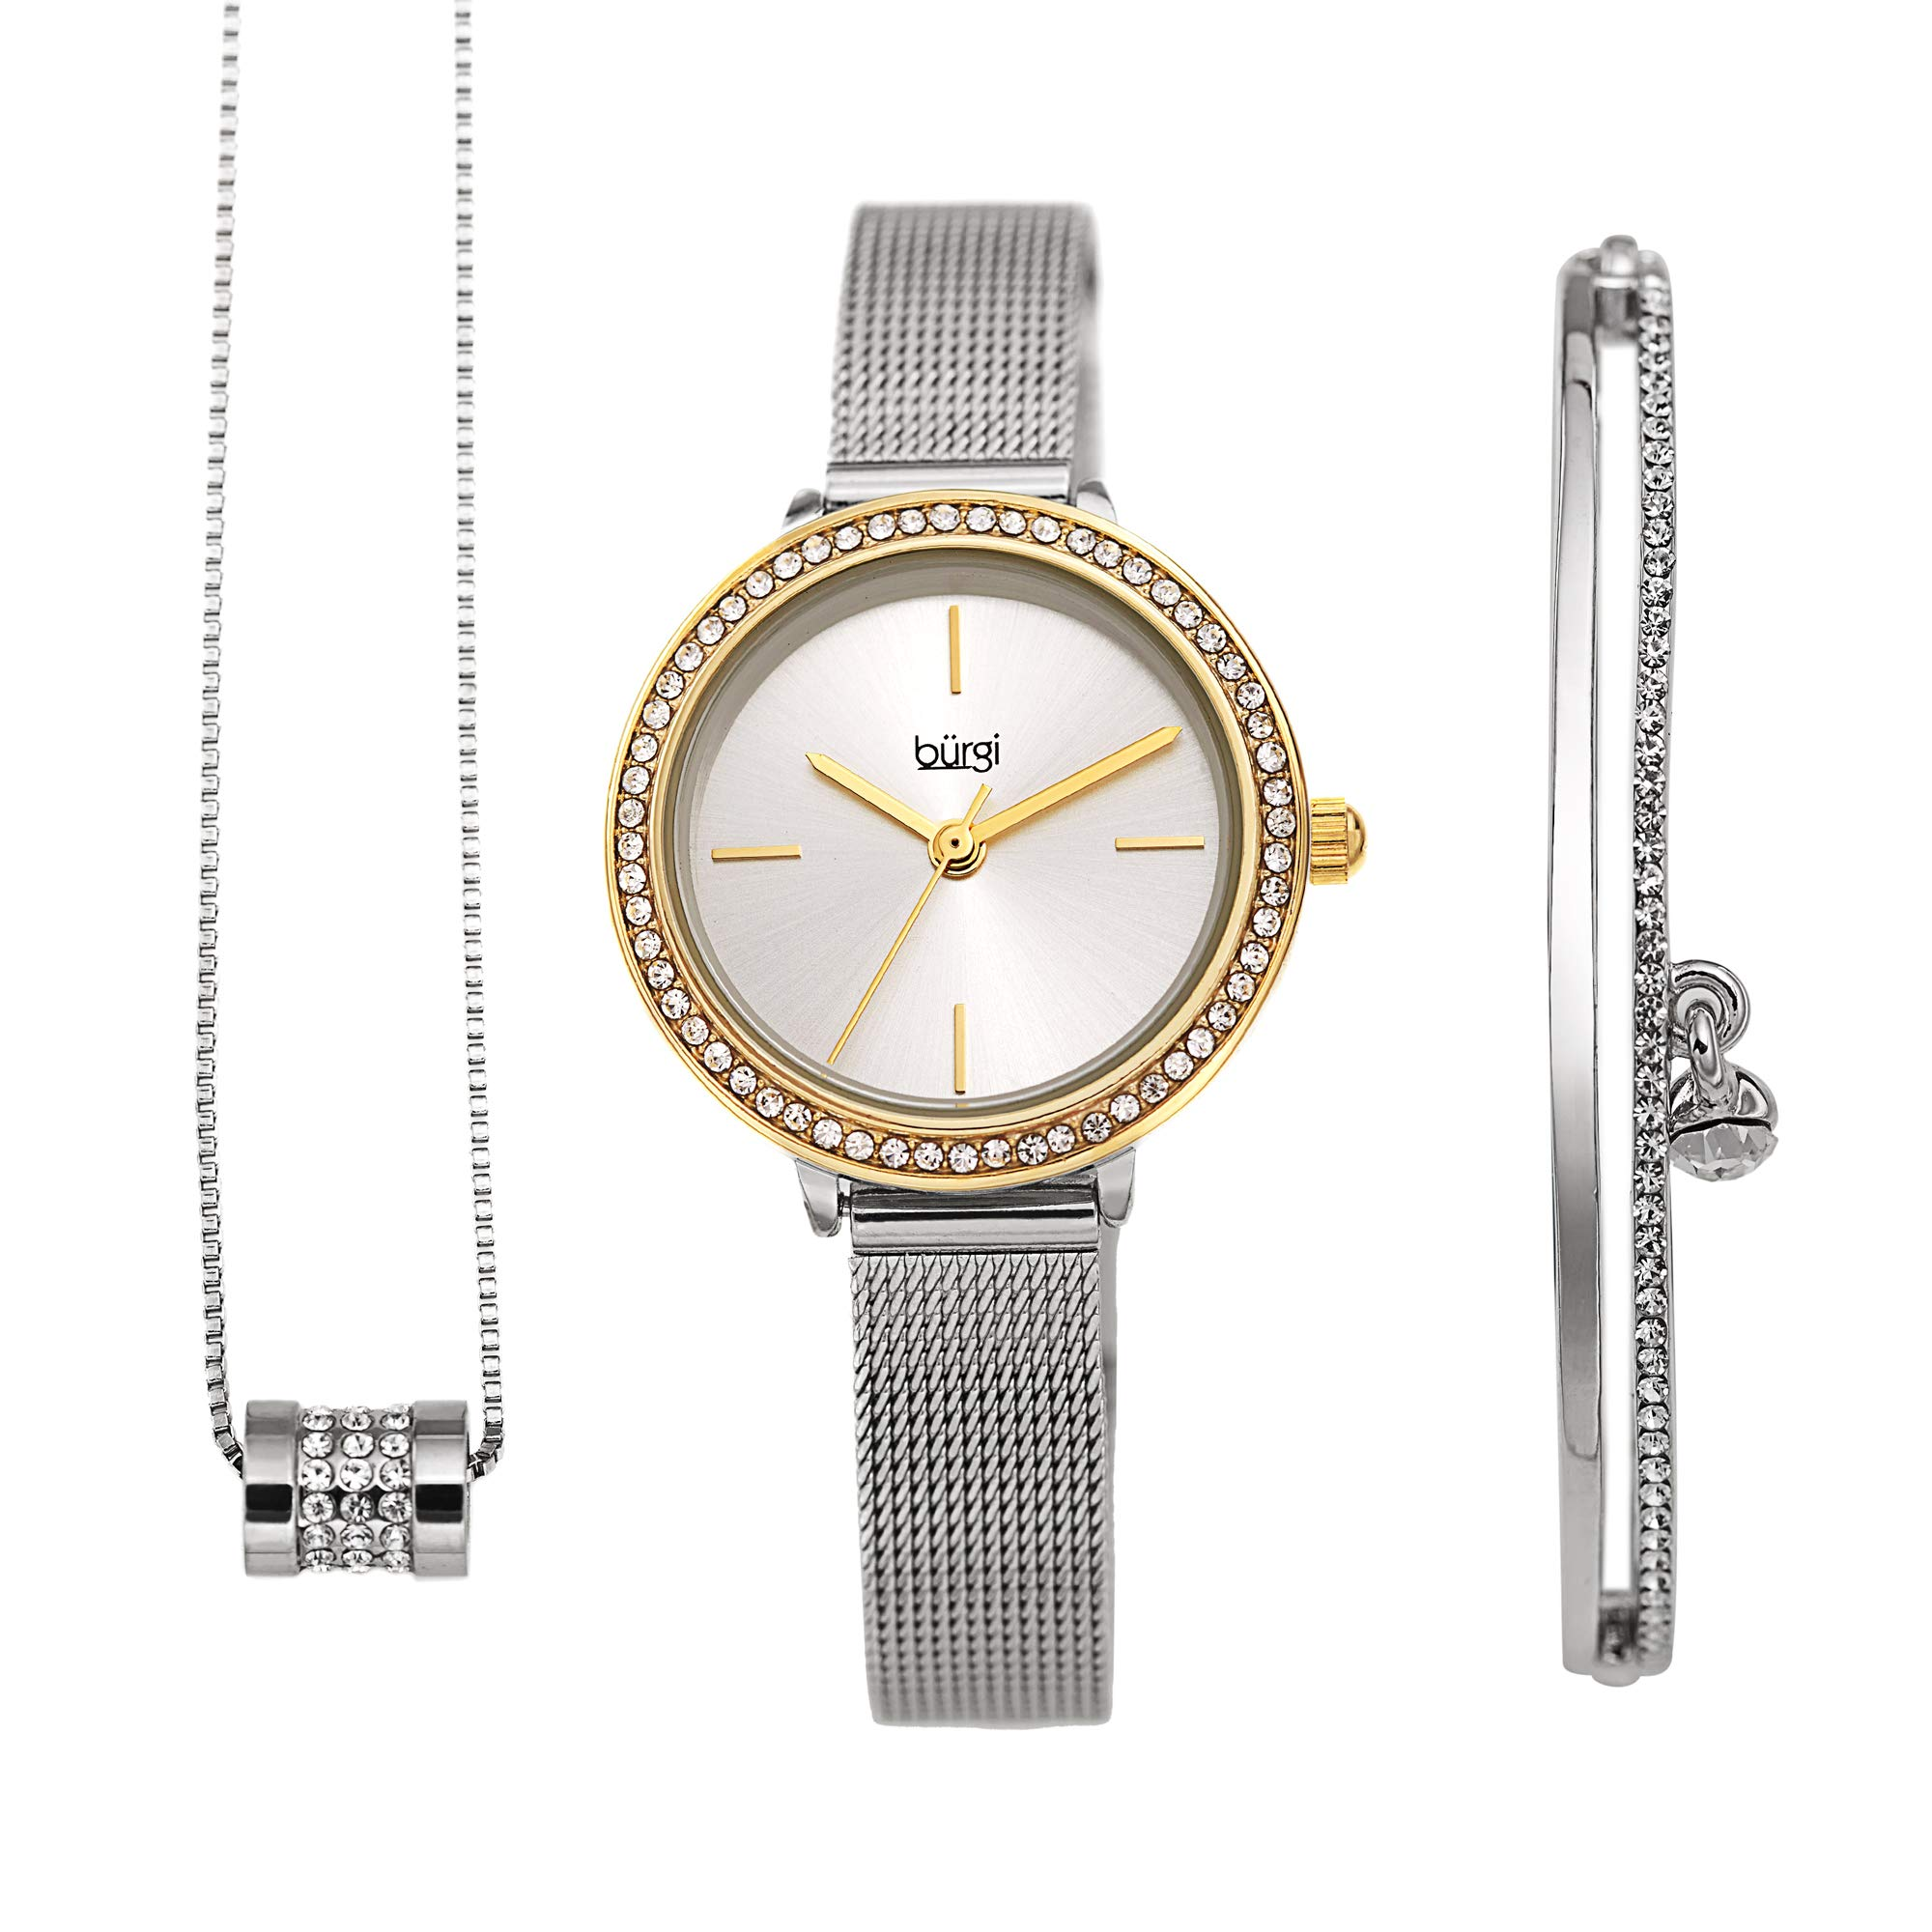 Burgi Women's Jewelry Gift Set – Swarovski Crystal Bezel Watch and Bracelet, Beaded Chain Link Necklace – Flash Plated Gold and Silver - BUR216TTG-S